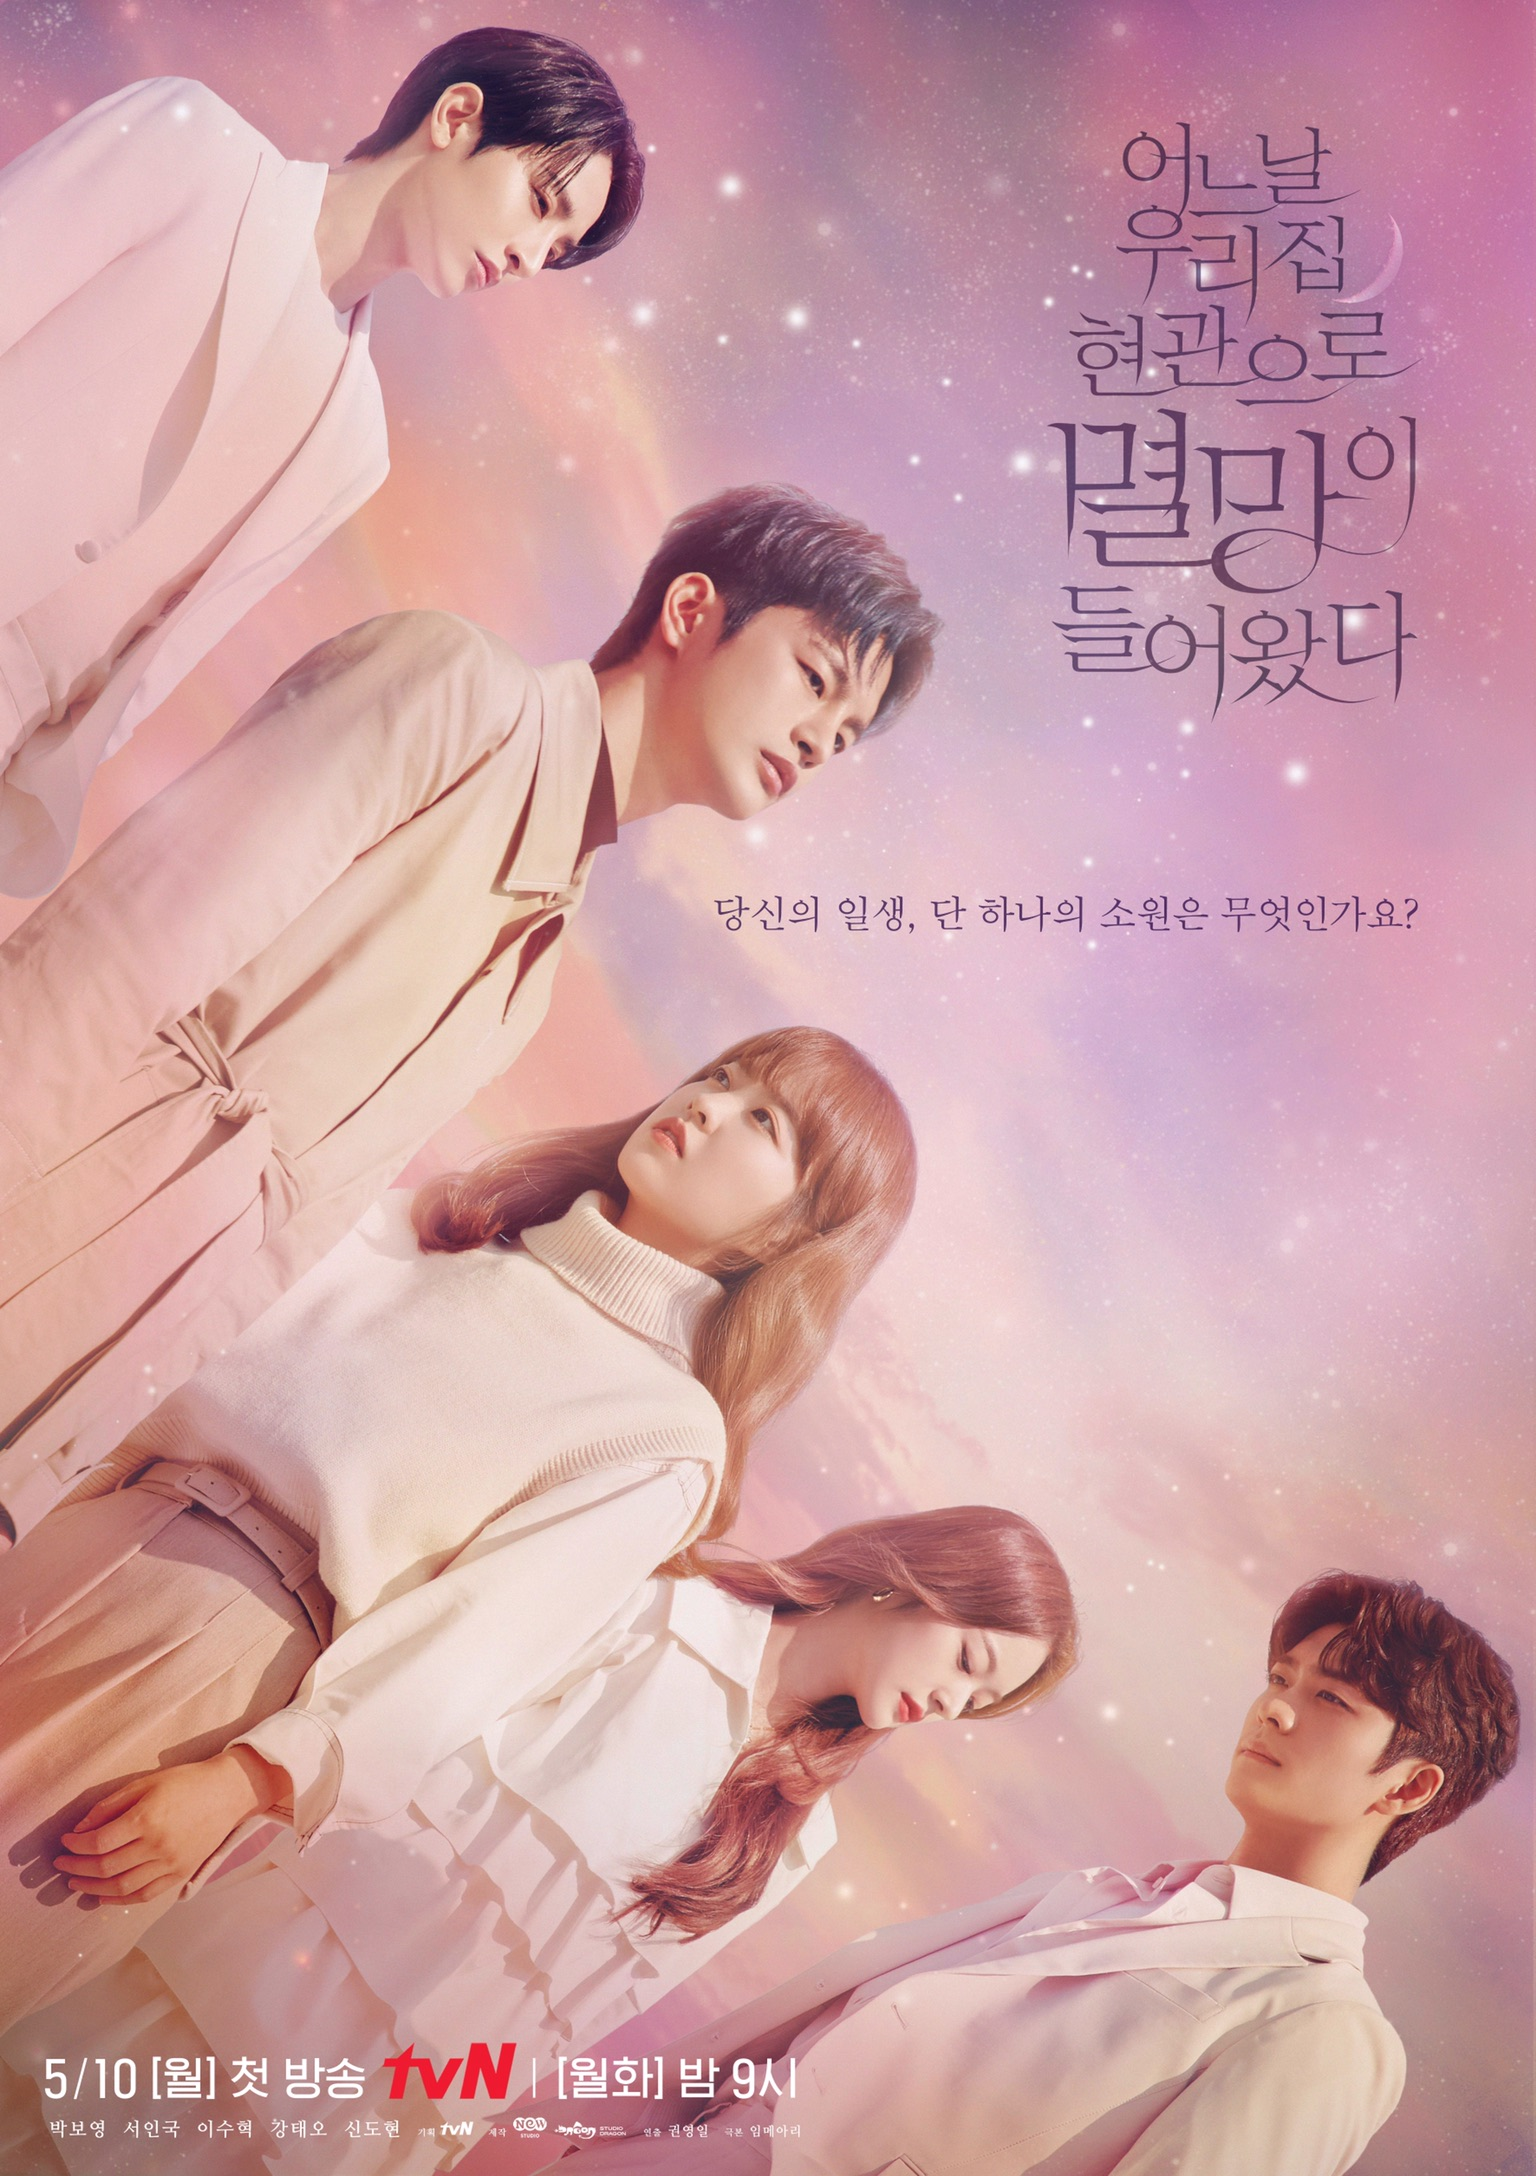 Tak Dong Kyung lives a fairly ordinary life until she stumbles into an unexpected fate and ends up signing a hundred-day contract with Myul Mang, risking her everything.